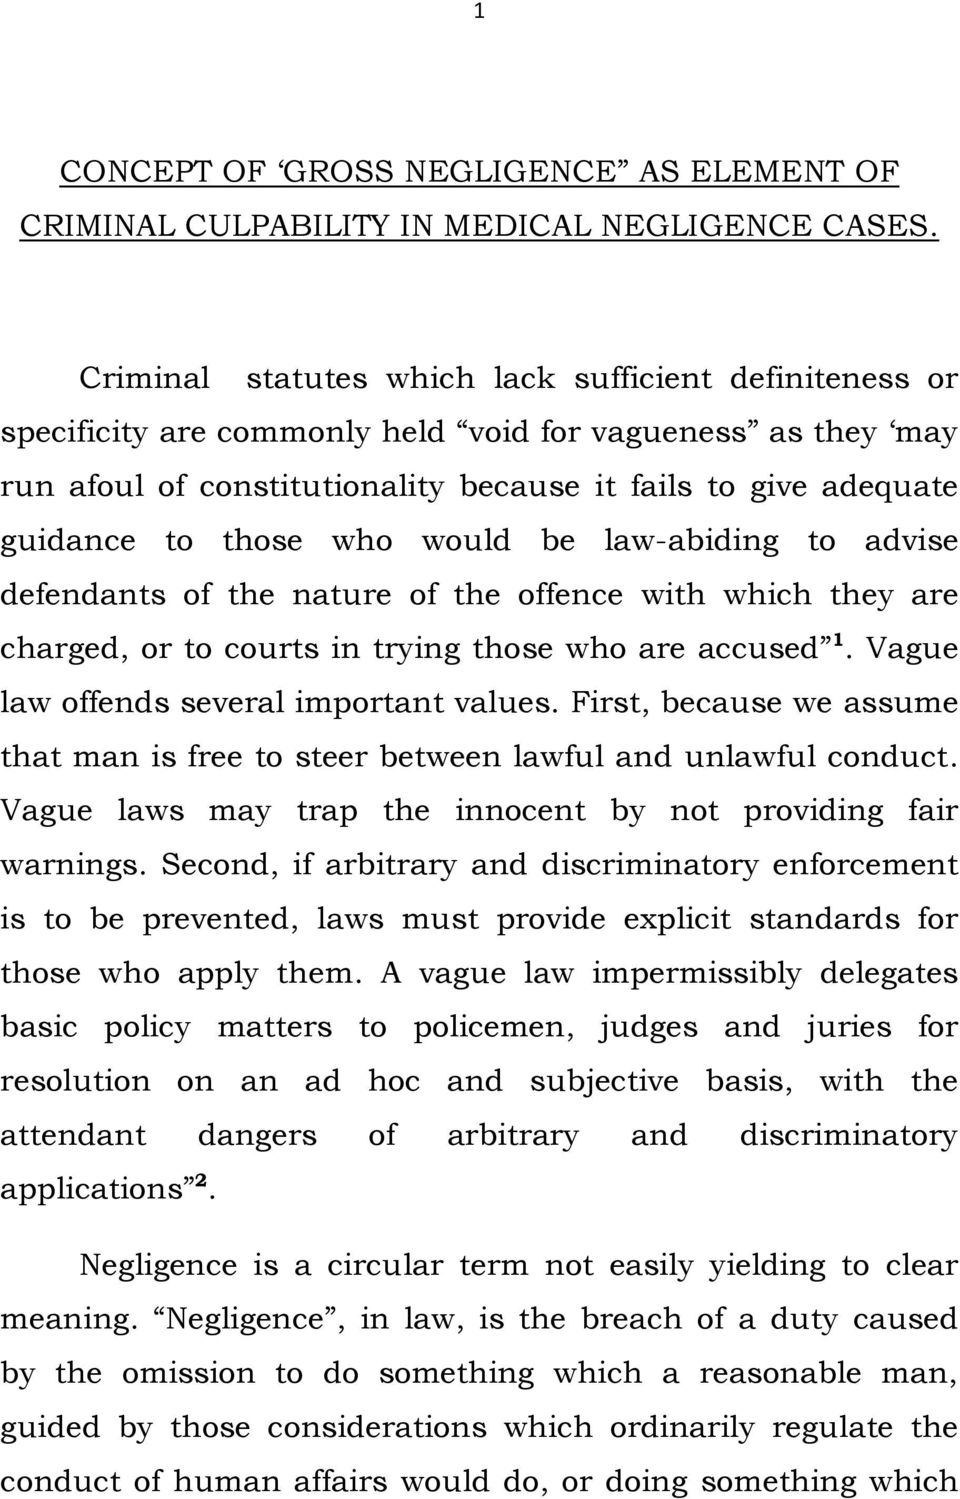 who would be law-abiding to advise defendants of the nature of the offence with which they are charged, or to courts in trying those who are accused 1. Vague law offends several important values.